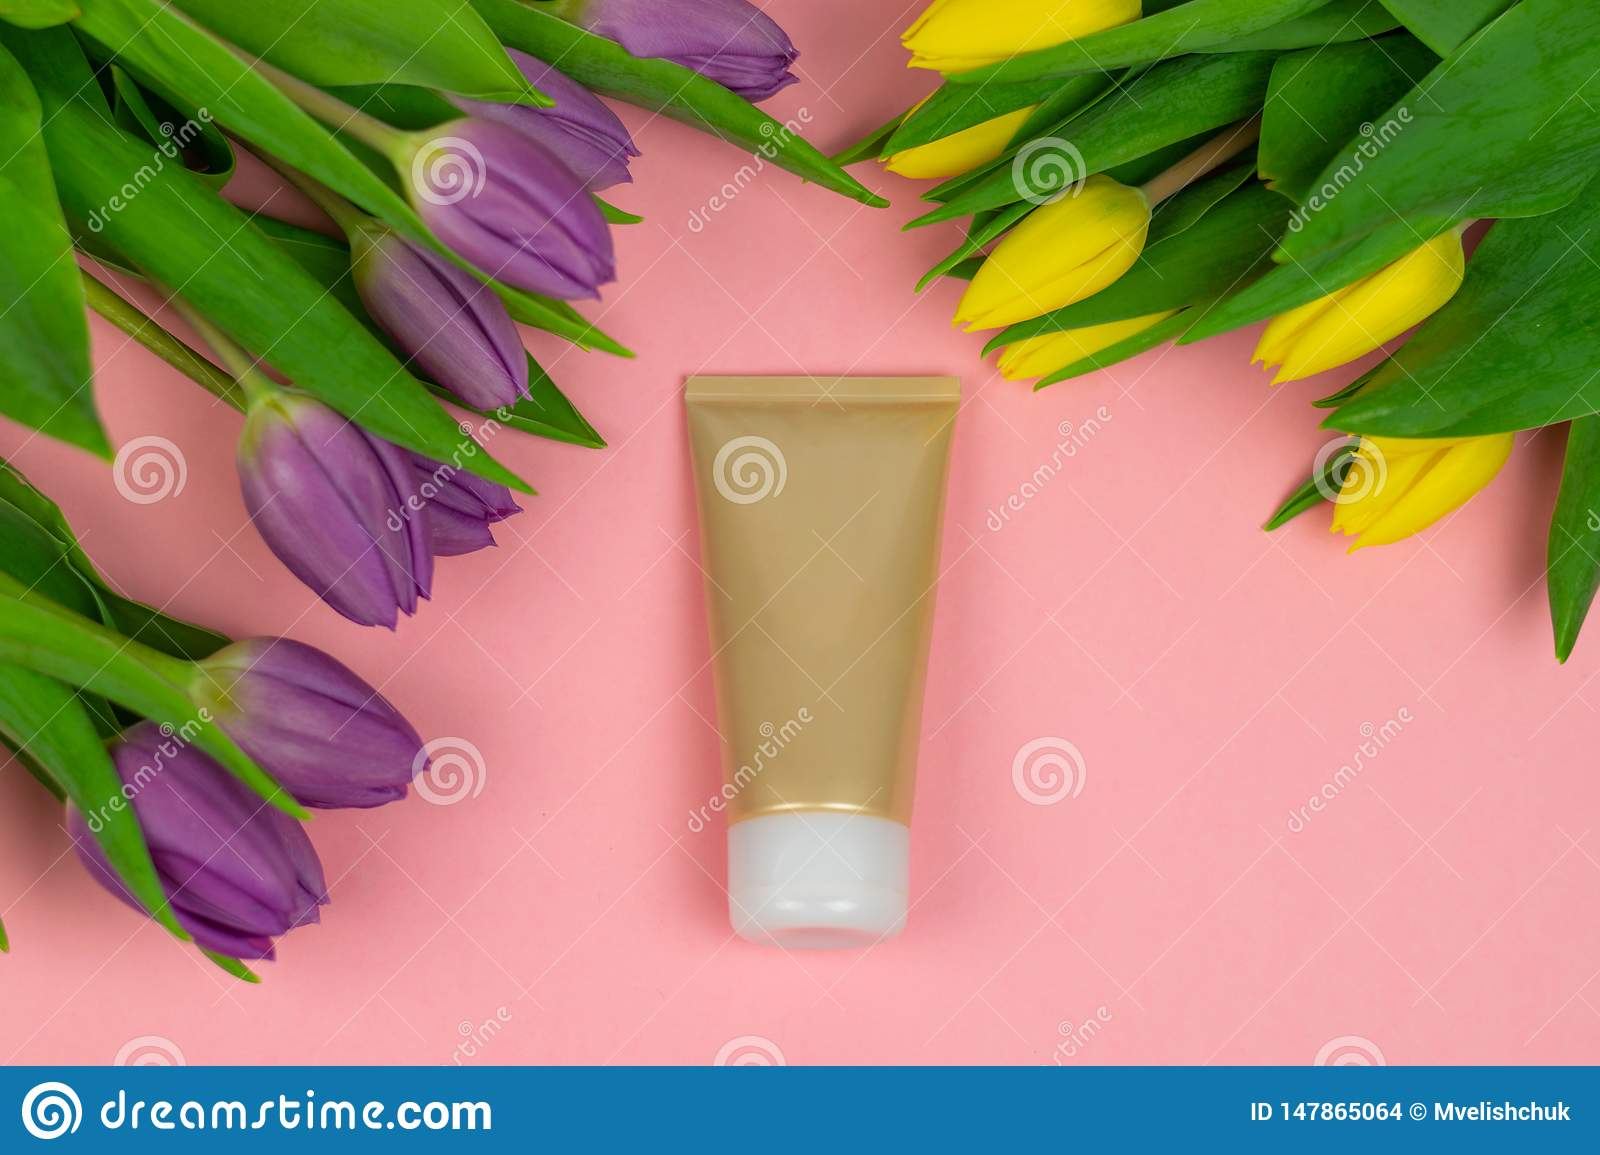 Empty tube of cream on a pink background with flowers